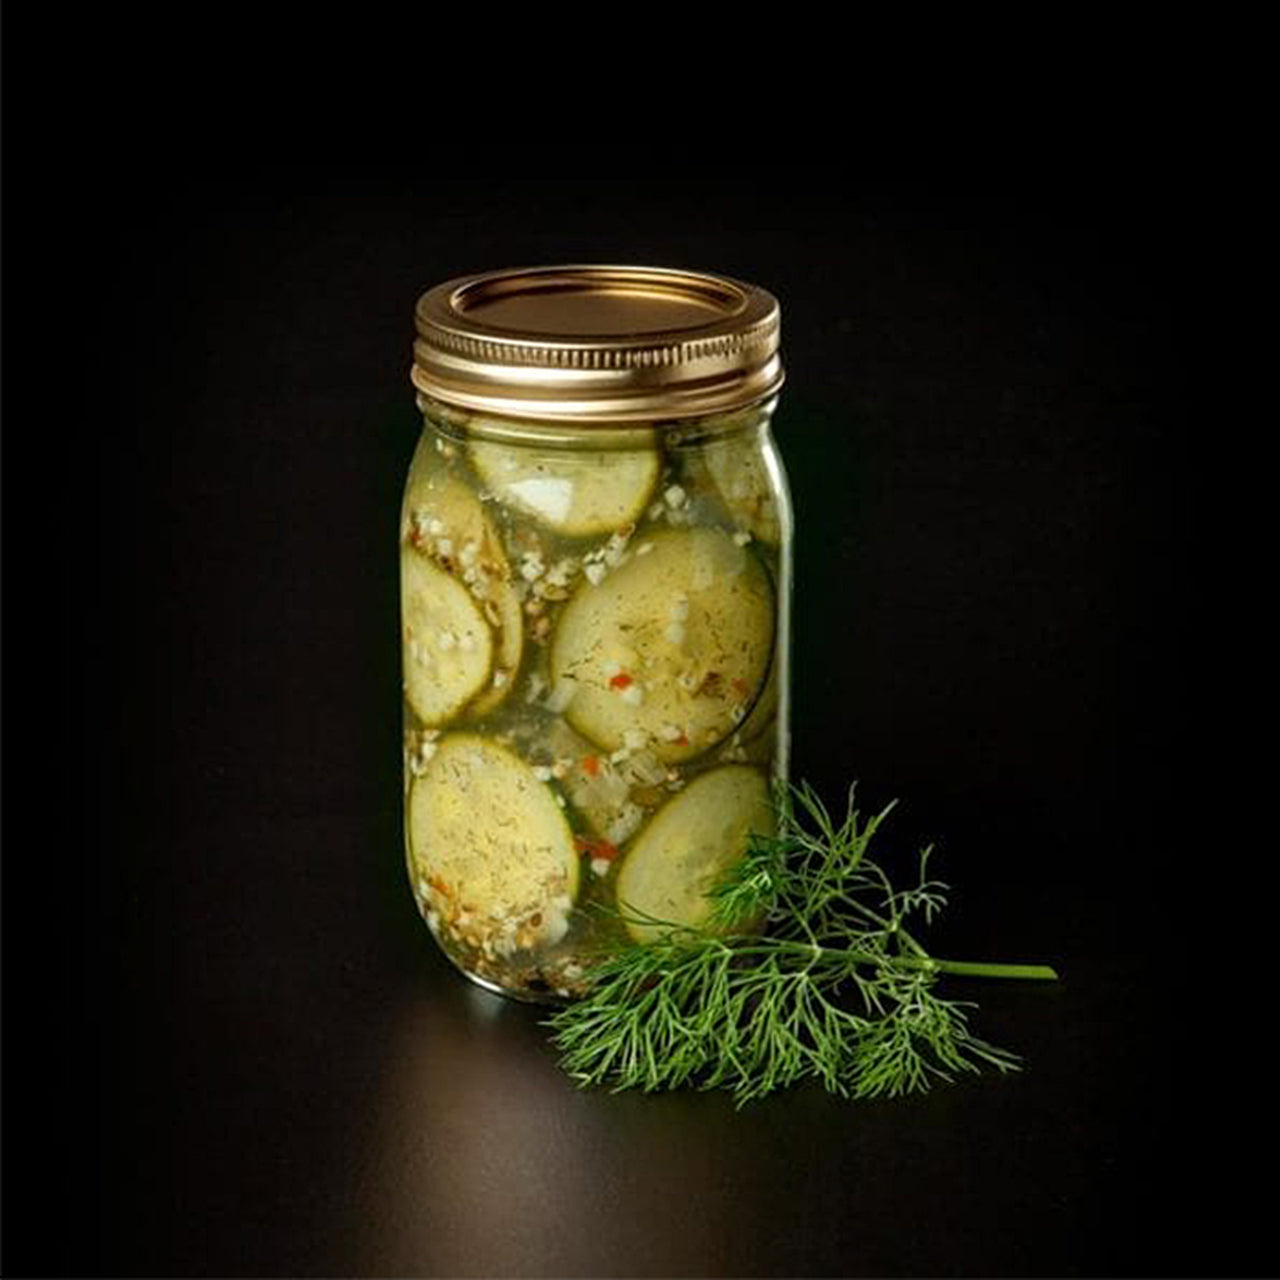 10 minute Pickling Kit